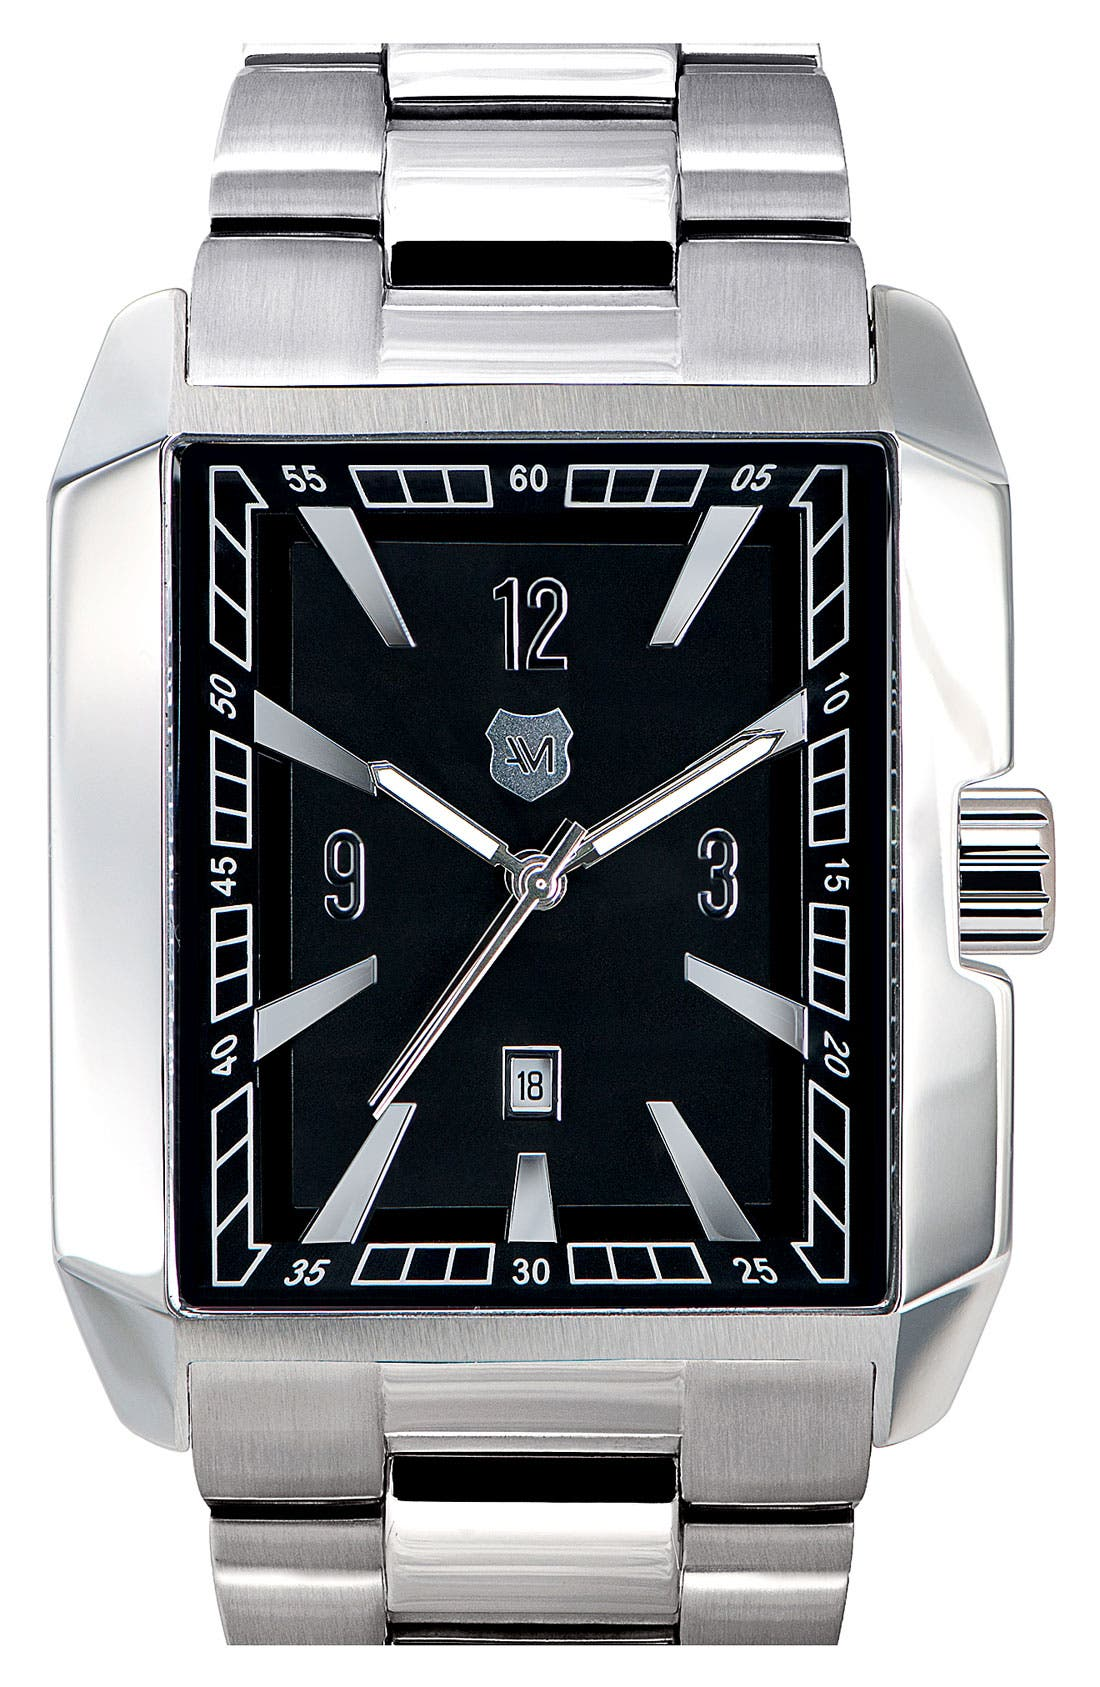 Main Image - Andrew Marc Watches 'Club Hipster' Rectangular Bracelet Watch